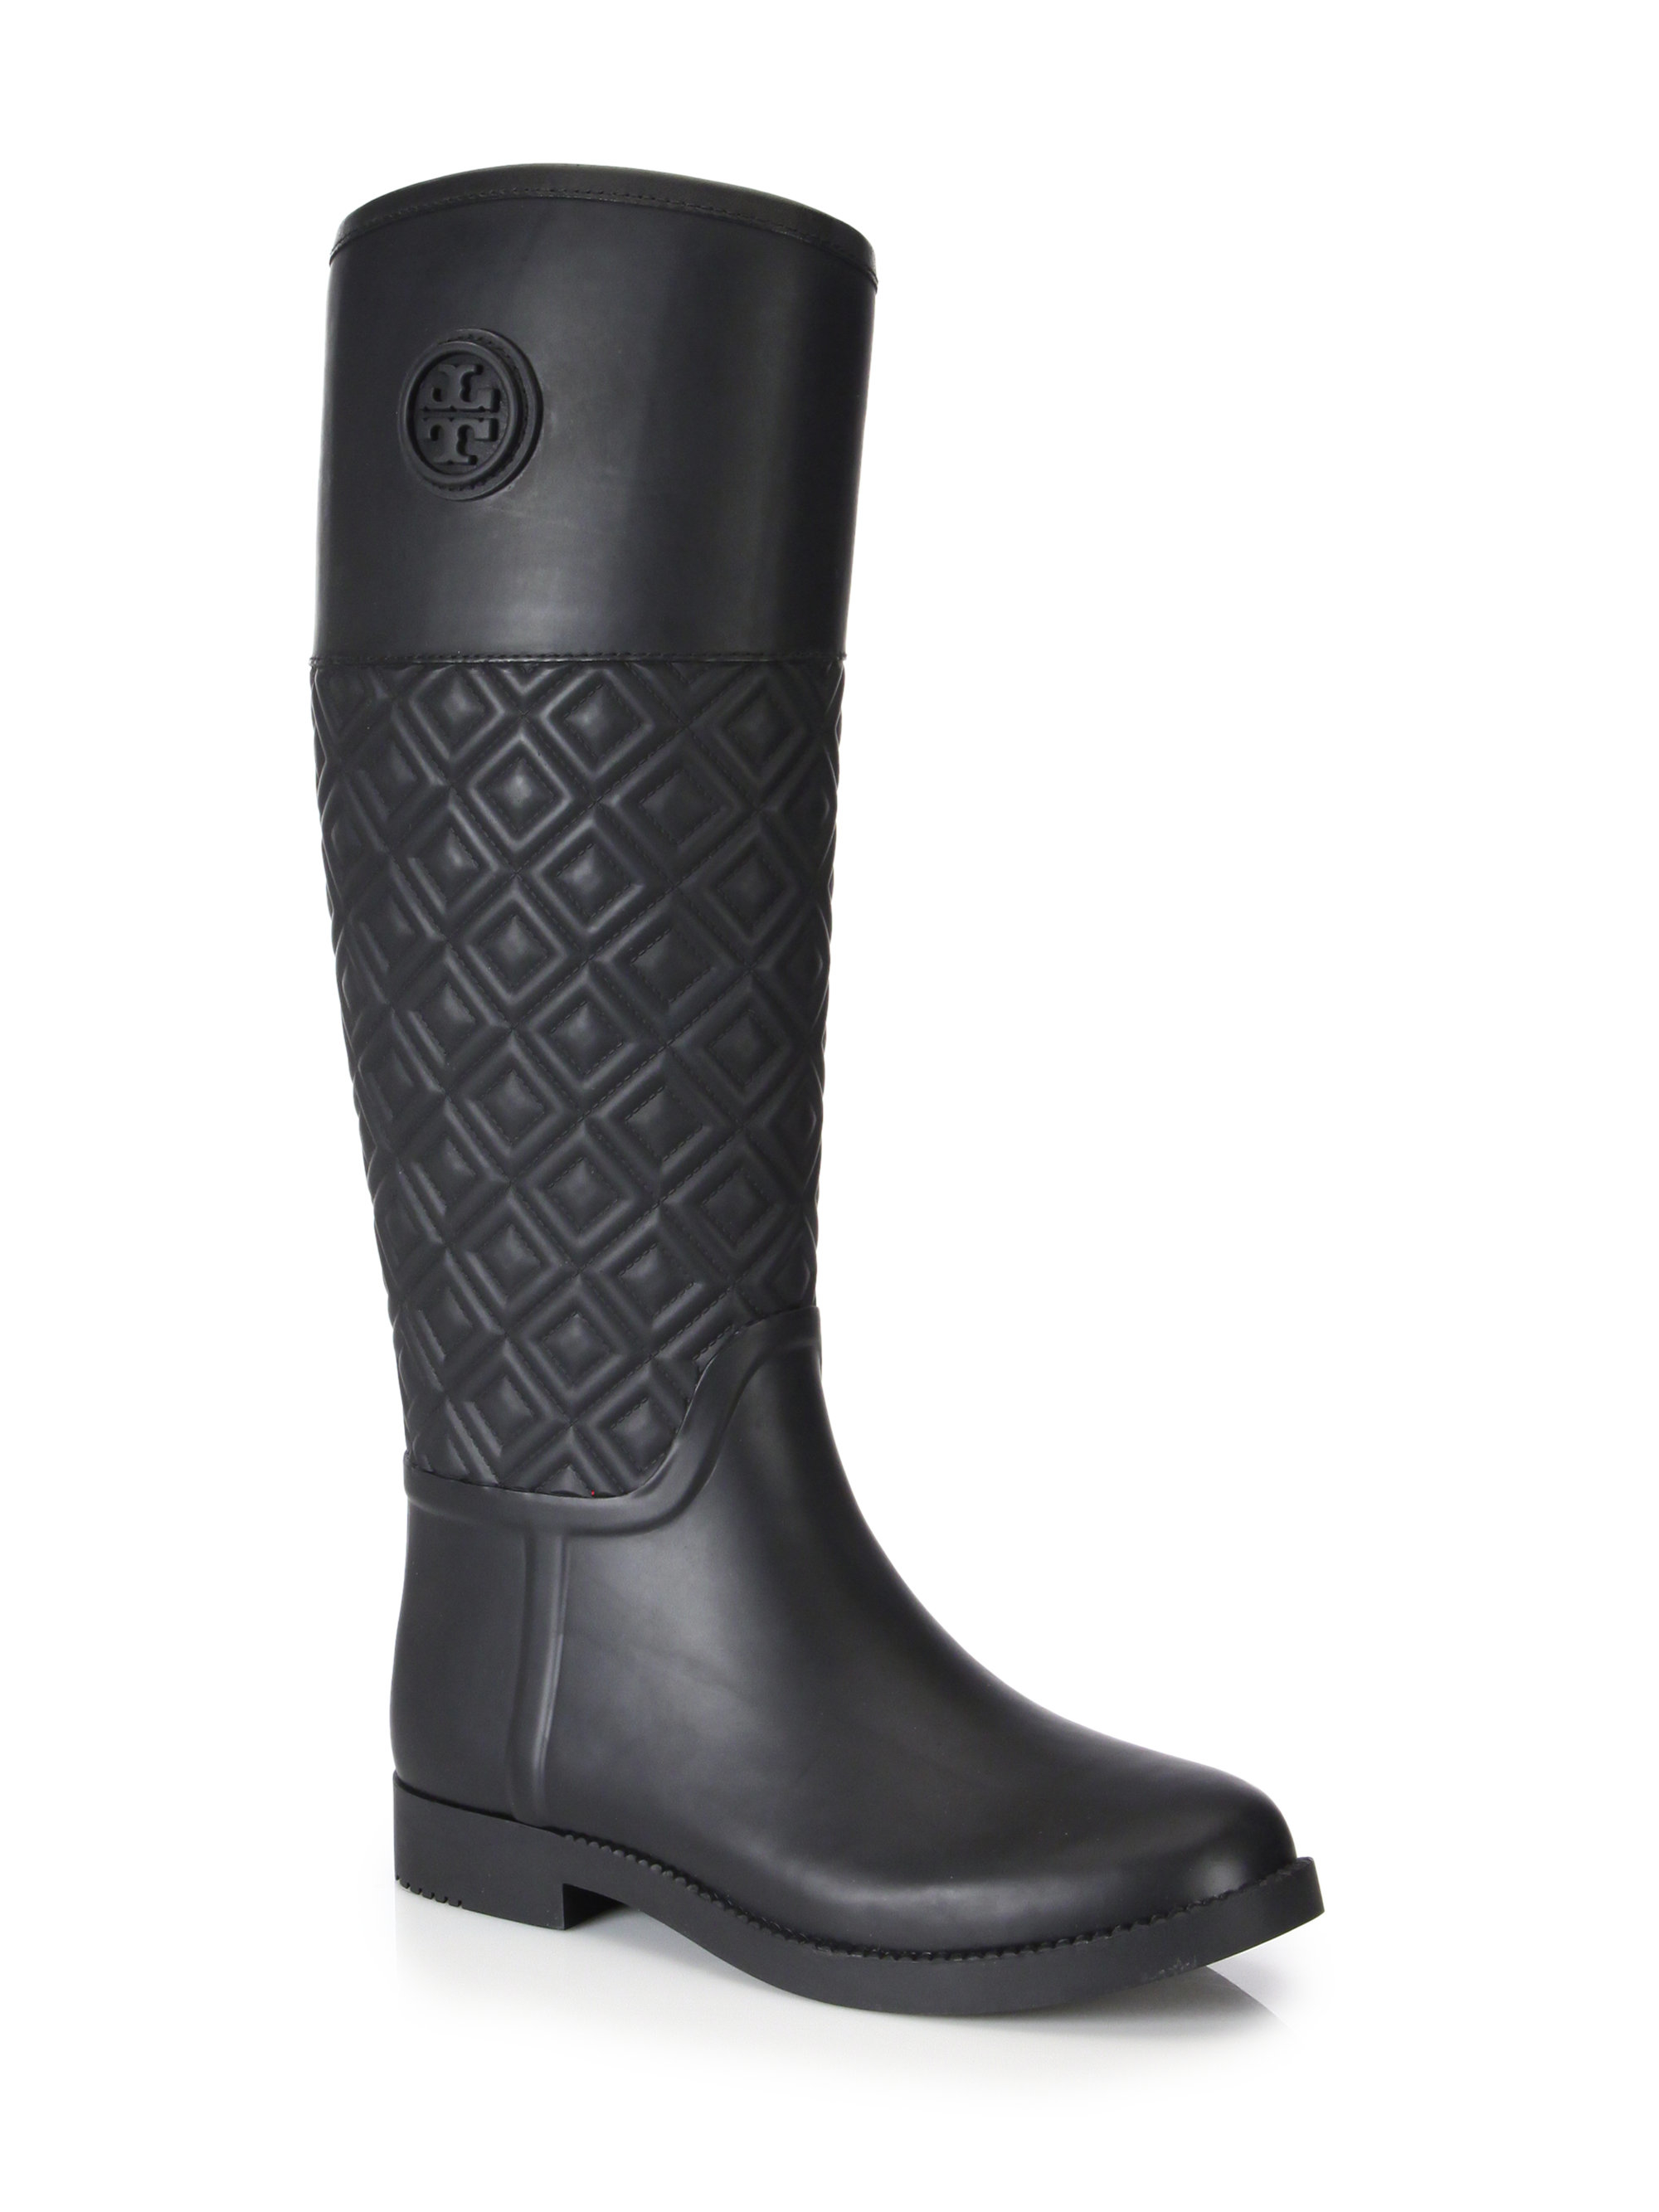 2521d302fbbb57 Gallery. Previously sold at  Saks Fifth Avenue · Women s Rain Boots Women s  Tory Burch Marion ...